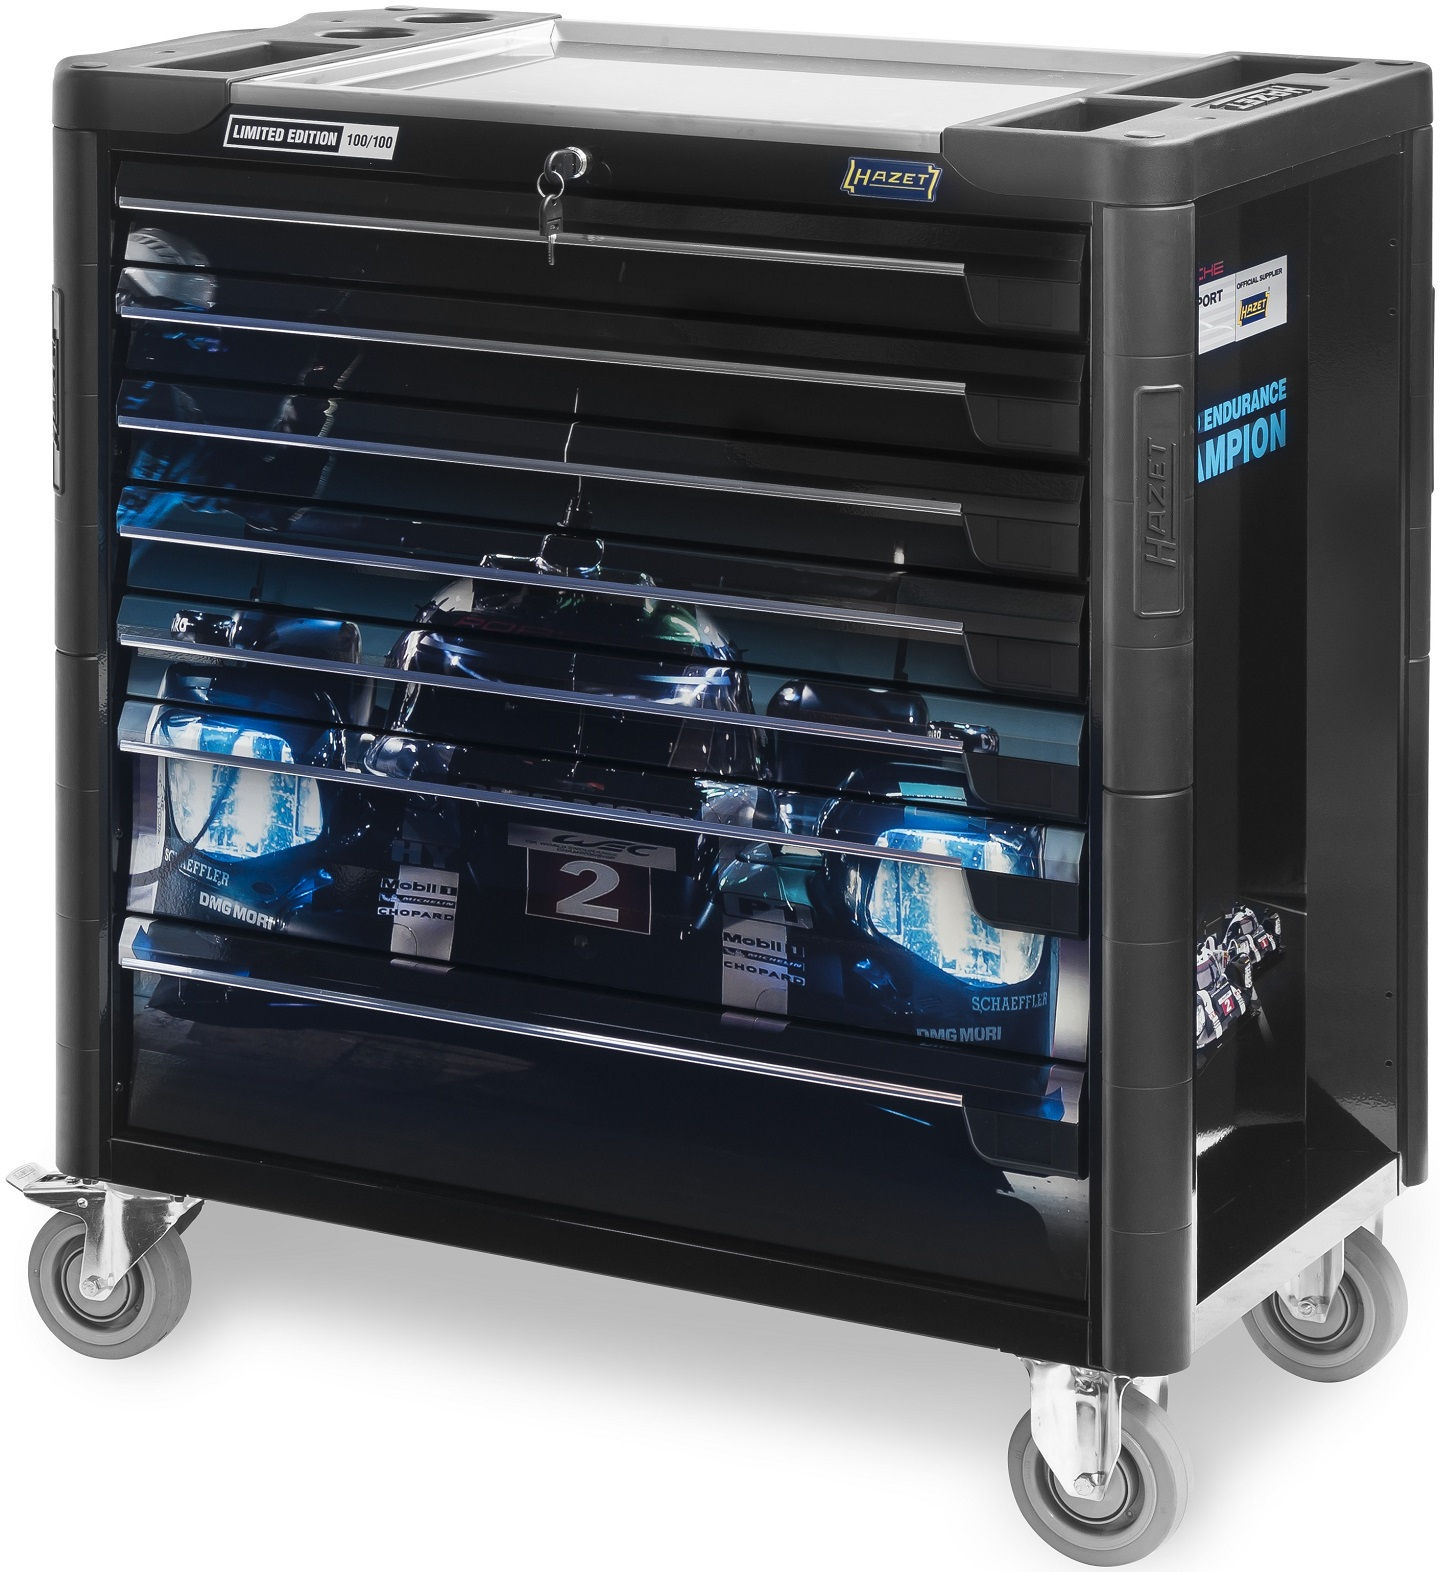 Hazet 179XL-7PDB Limited Editon Porsche Motorsport Tool Trolley Black by Hazet of Germany